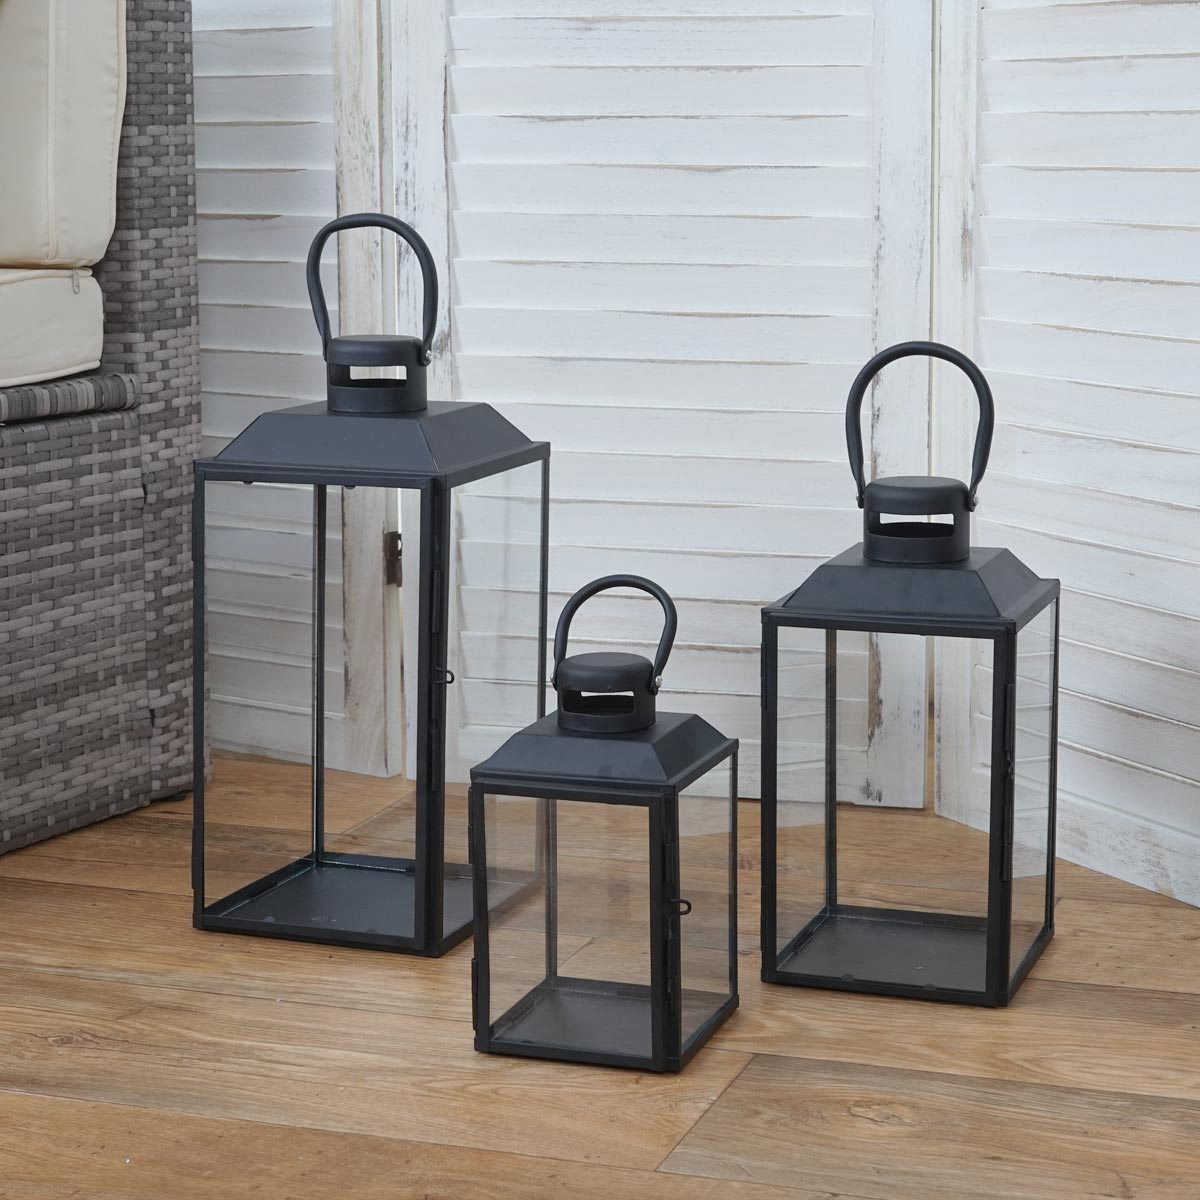 3er set laterne hwc b38 windlicht gartenlaterne metall h he 42 33 24cm. Black Bedroom Furniture Sets. Home Design Ideas